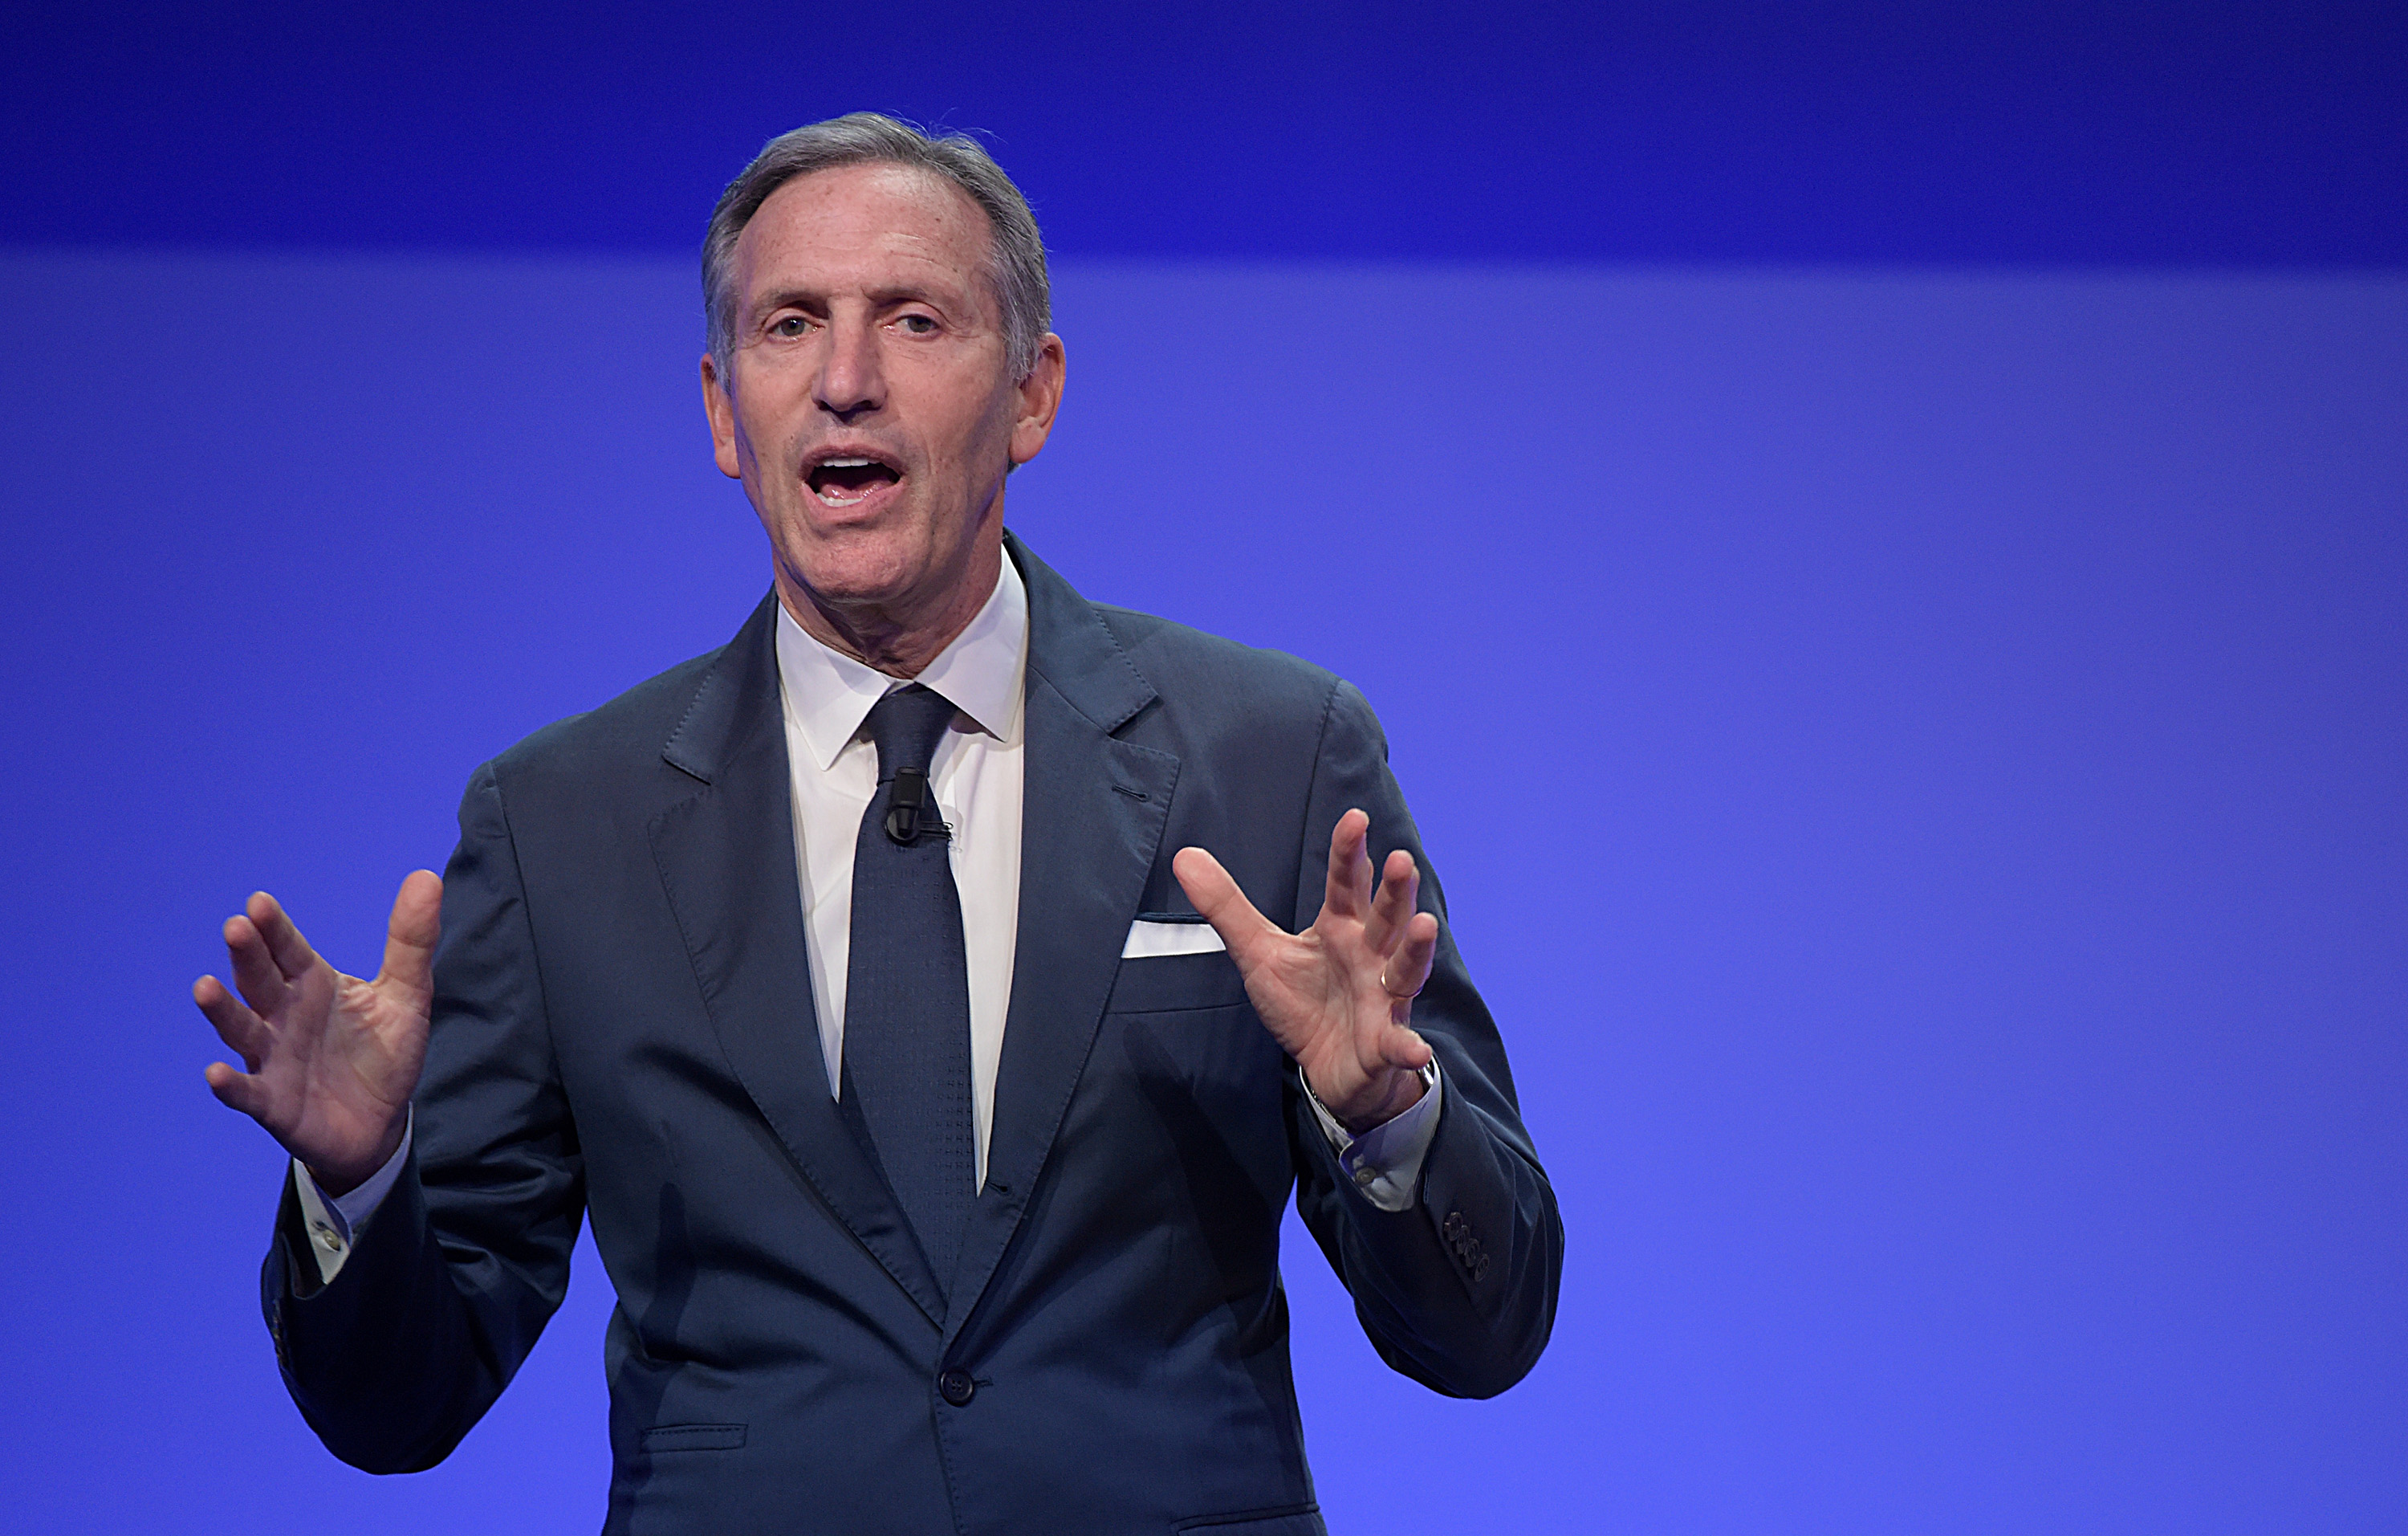 Howard Schultz,  Executive Chairman of Starbucks speaks during Seeds & Chips Summit on May 7, 2018 in Milan, Italy.